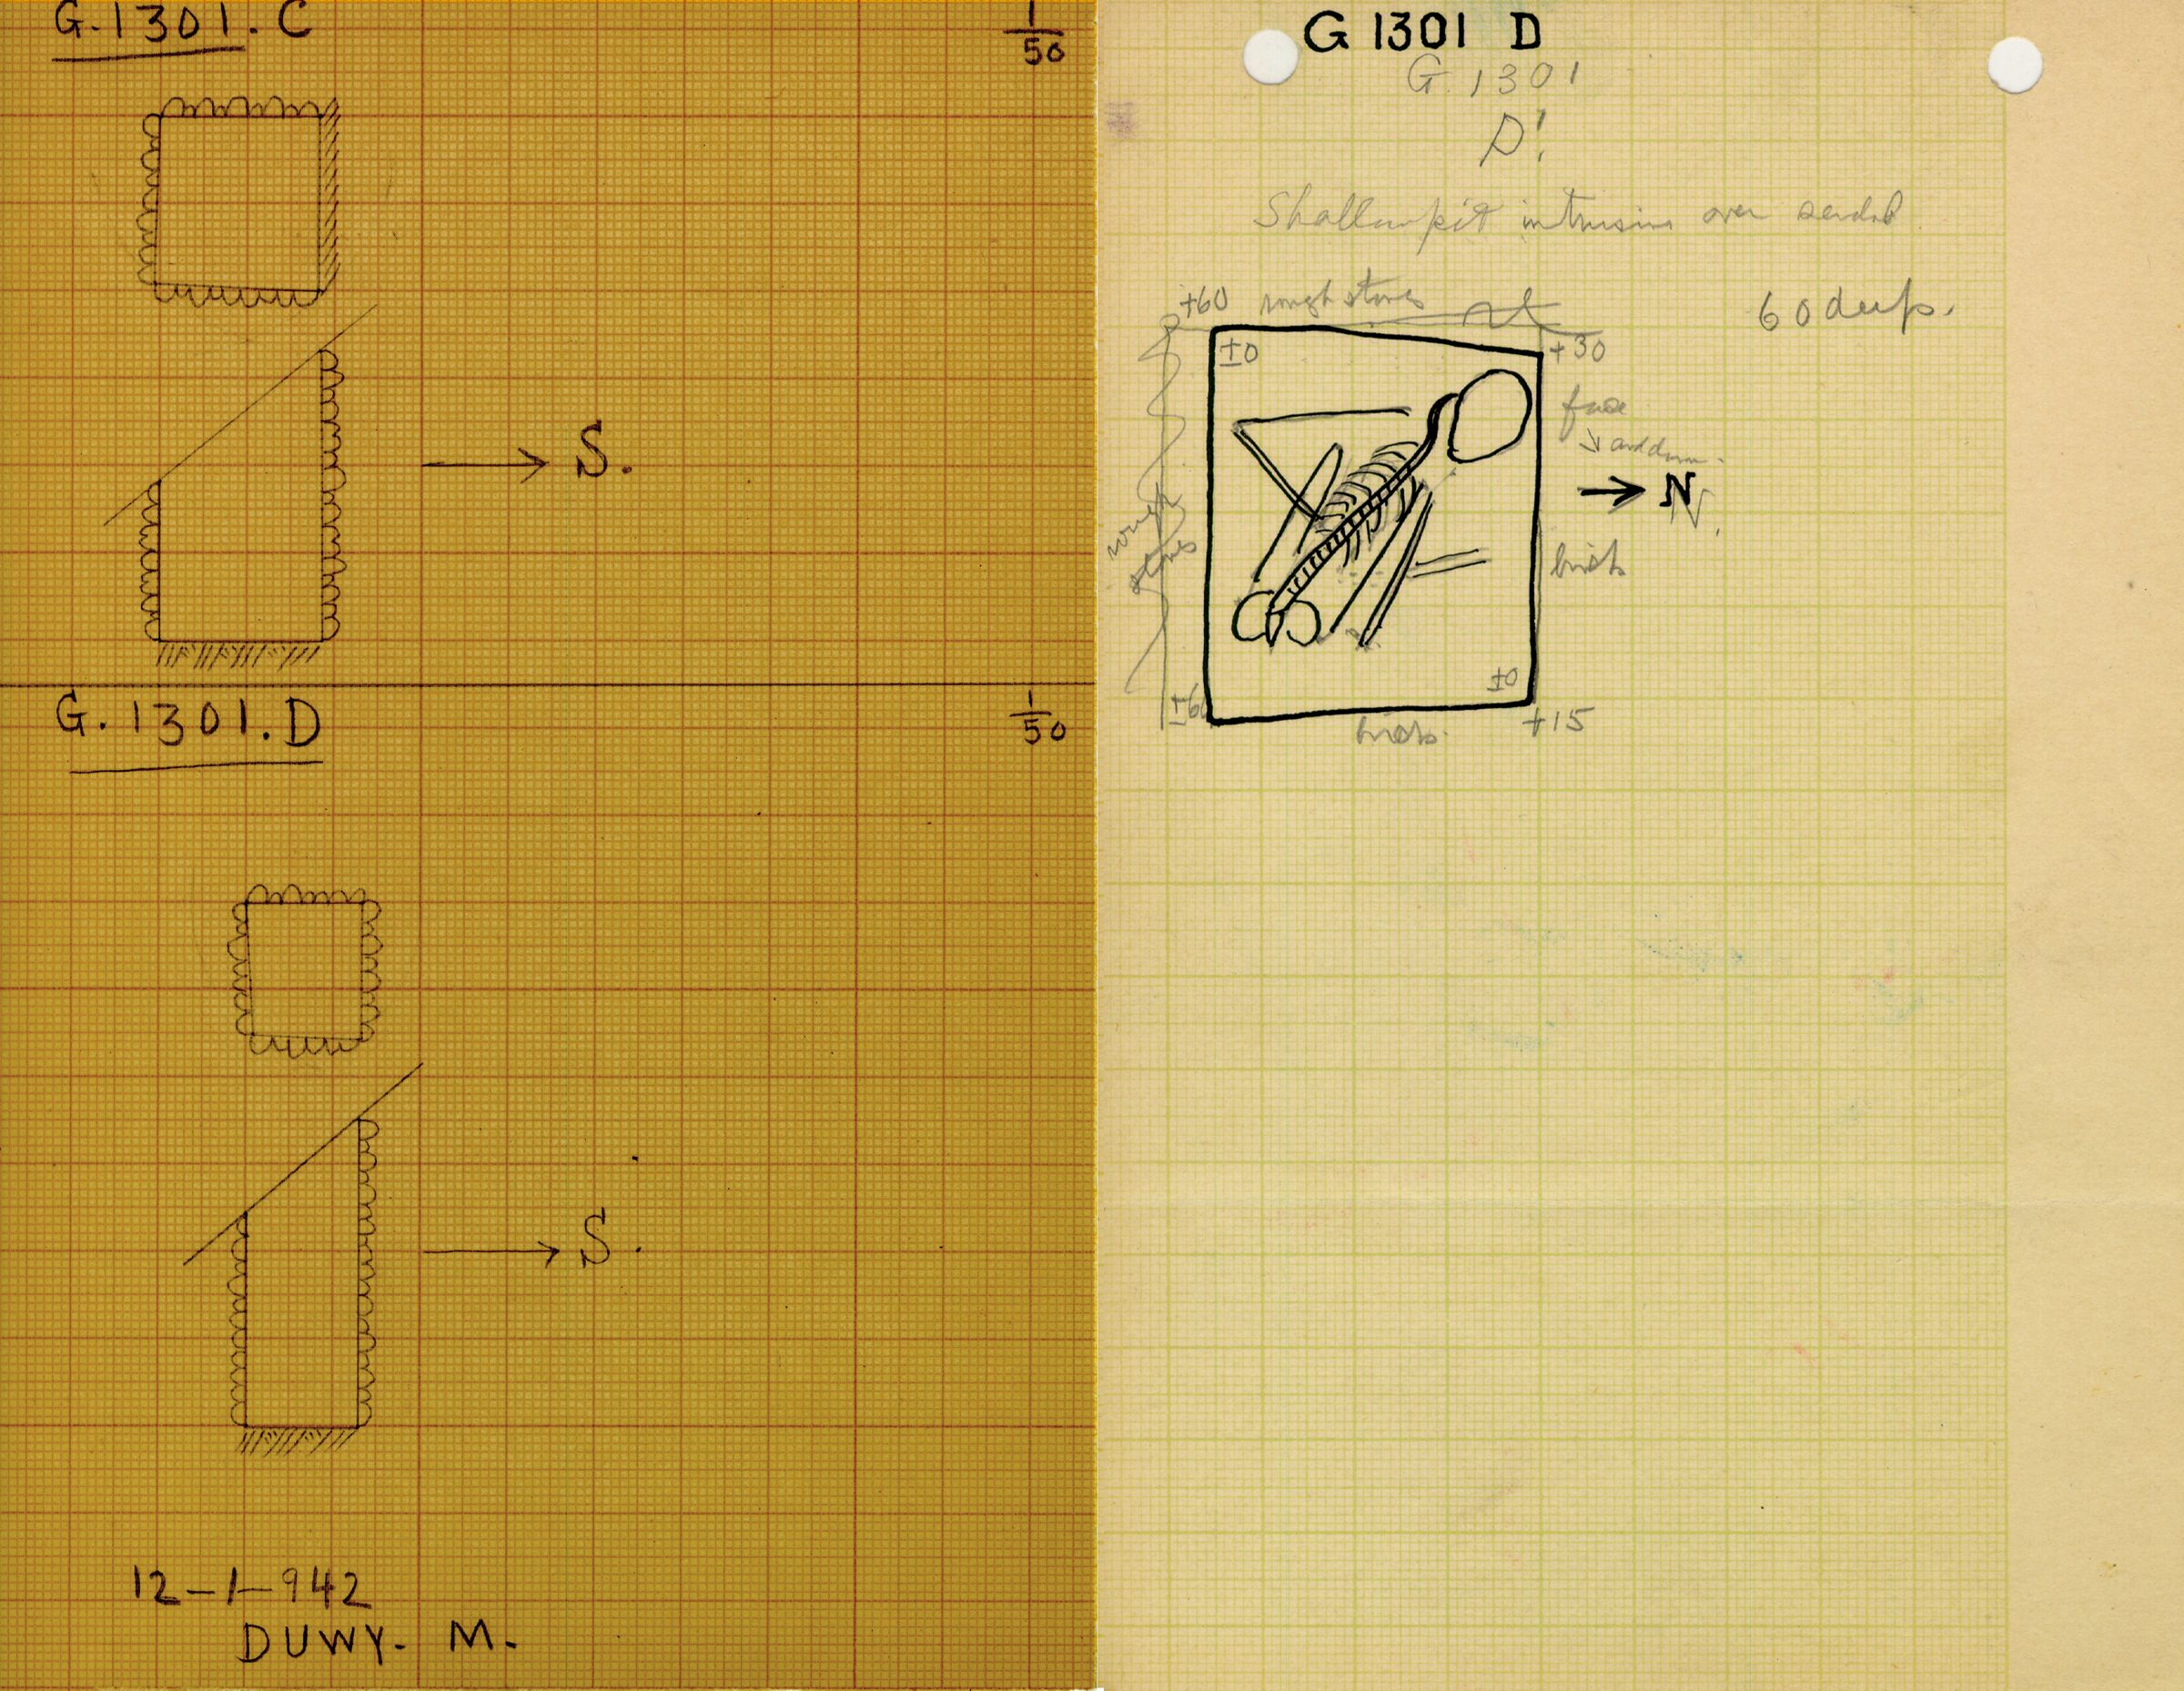 Maps and plans: G 1301, Shaft D